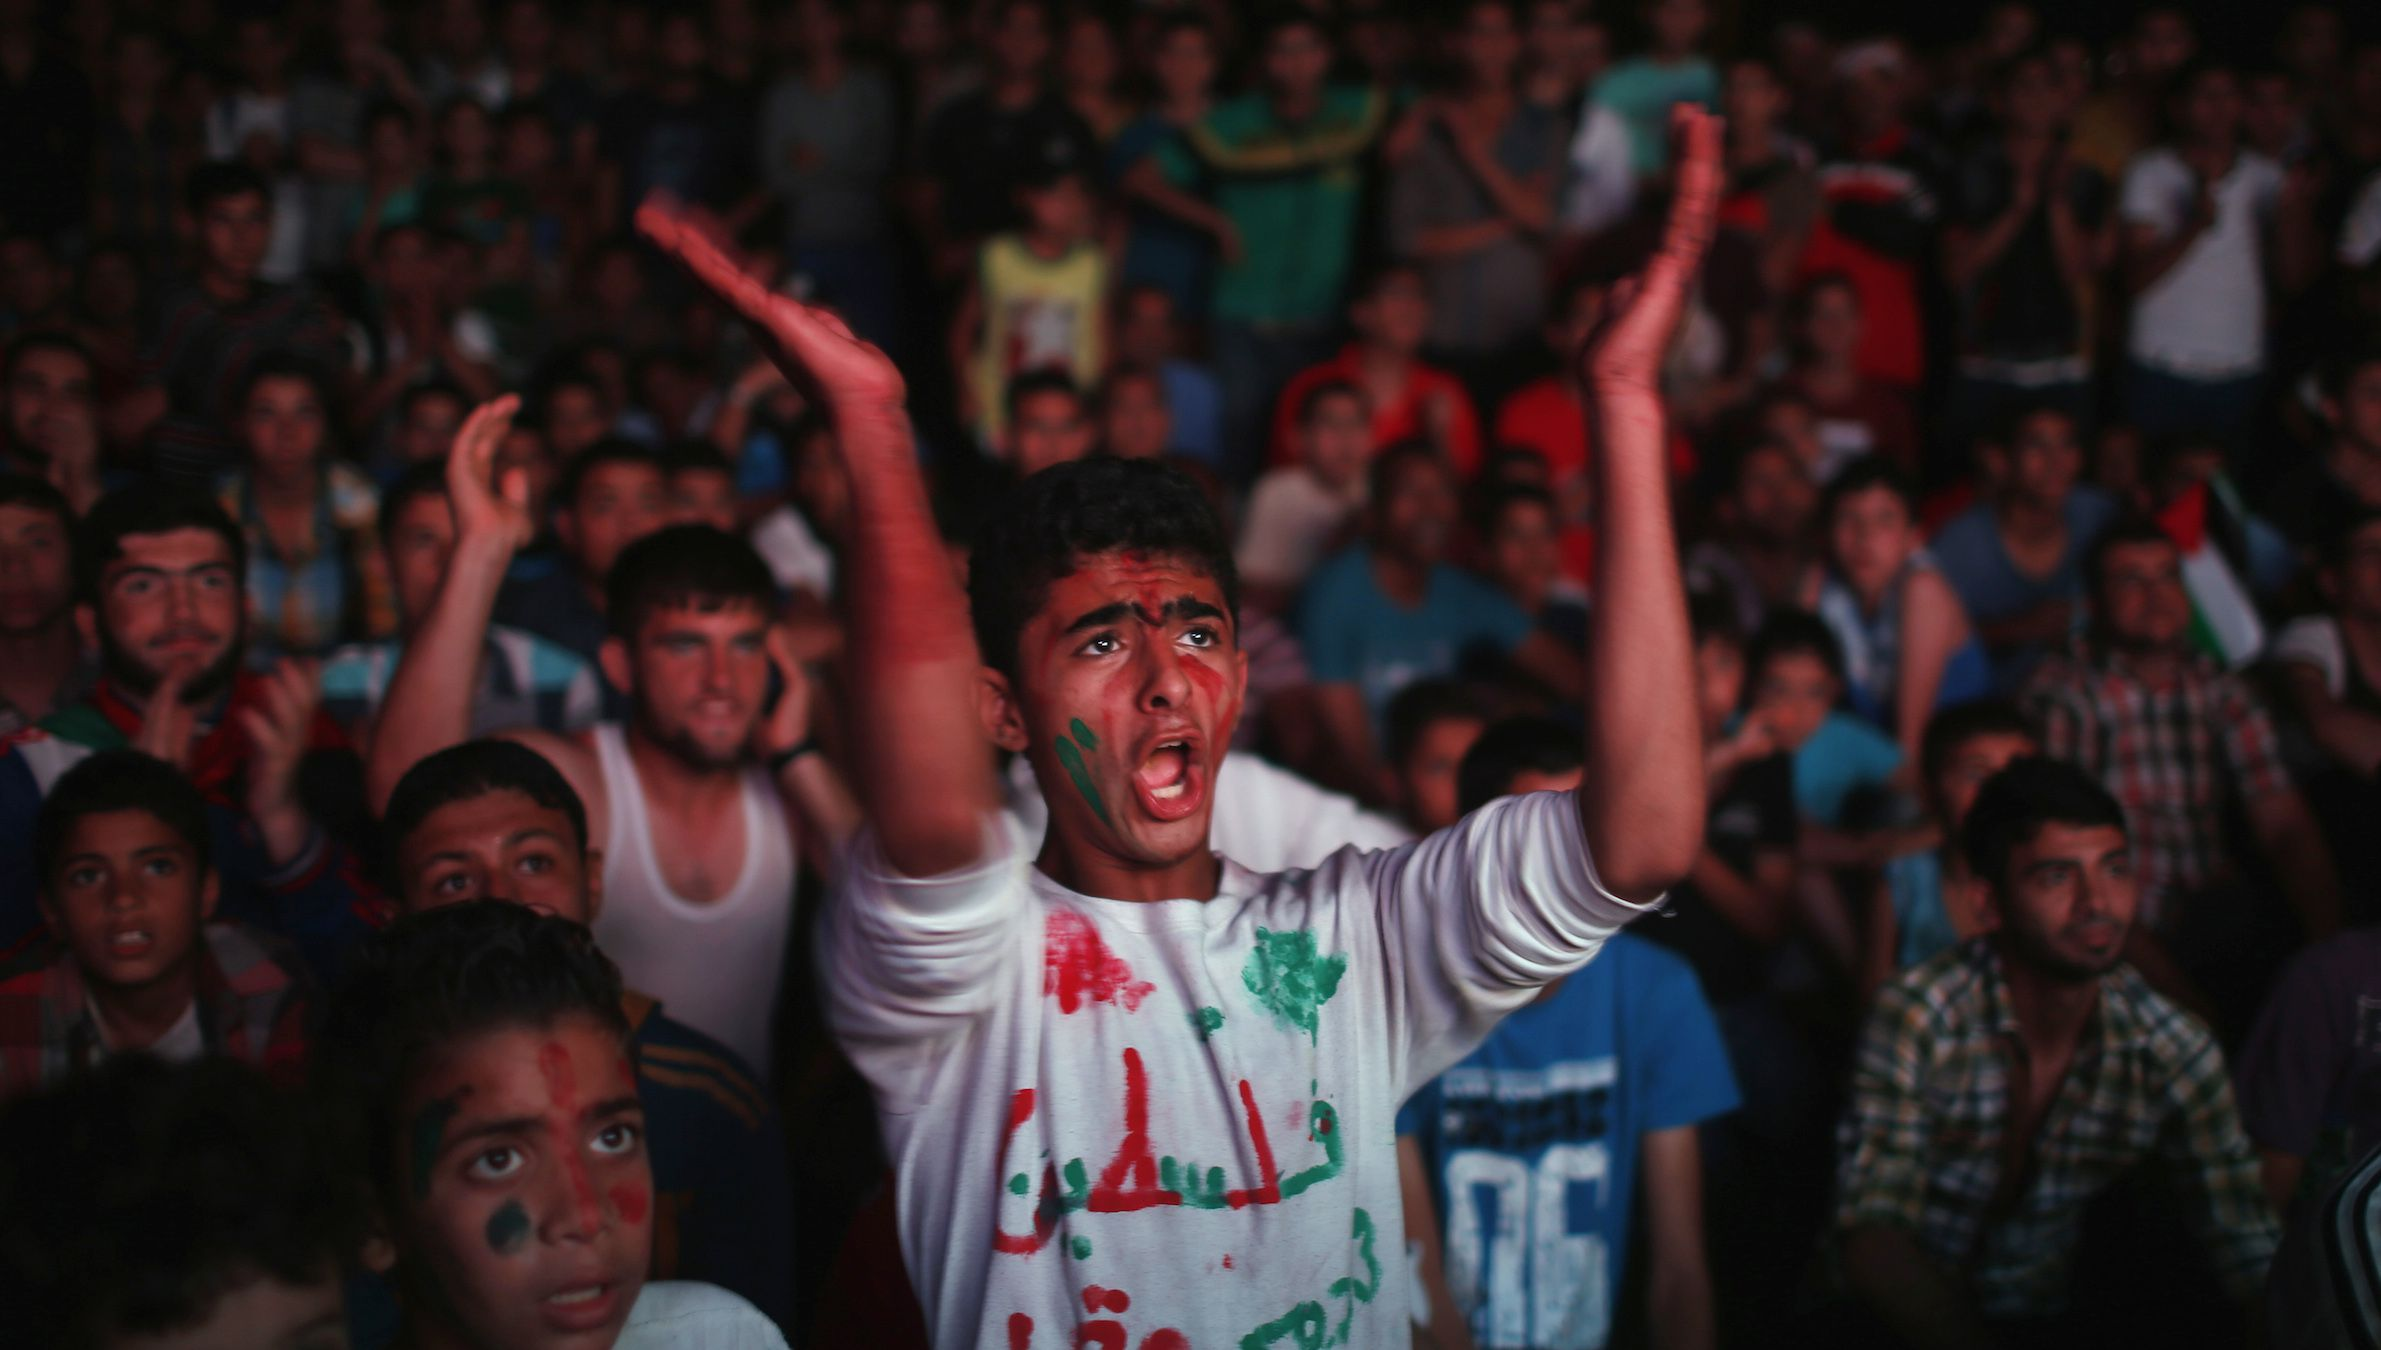 Palestinians cheer as they watch the soccer match between their national team and Philippines on large screens during the AFC Cup Final, in Gaza City May 30, 2014,